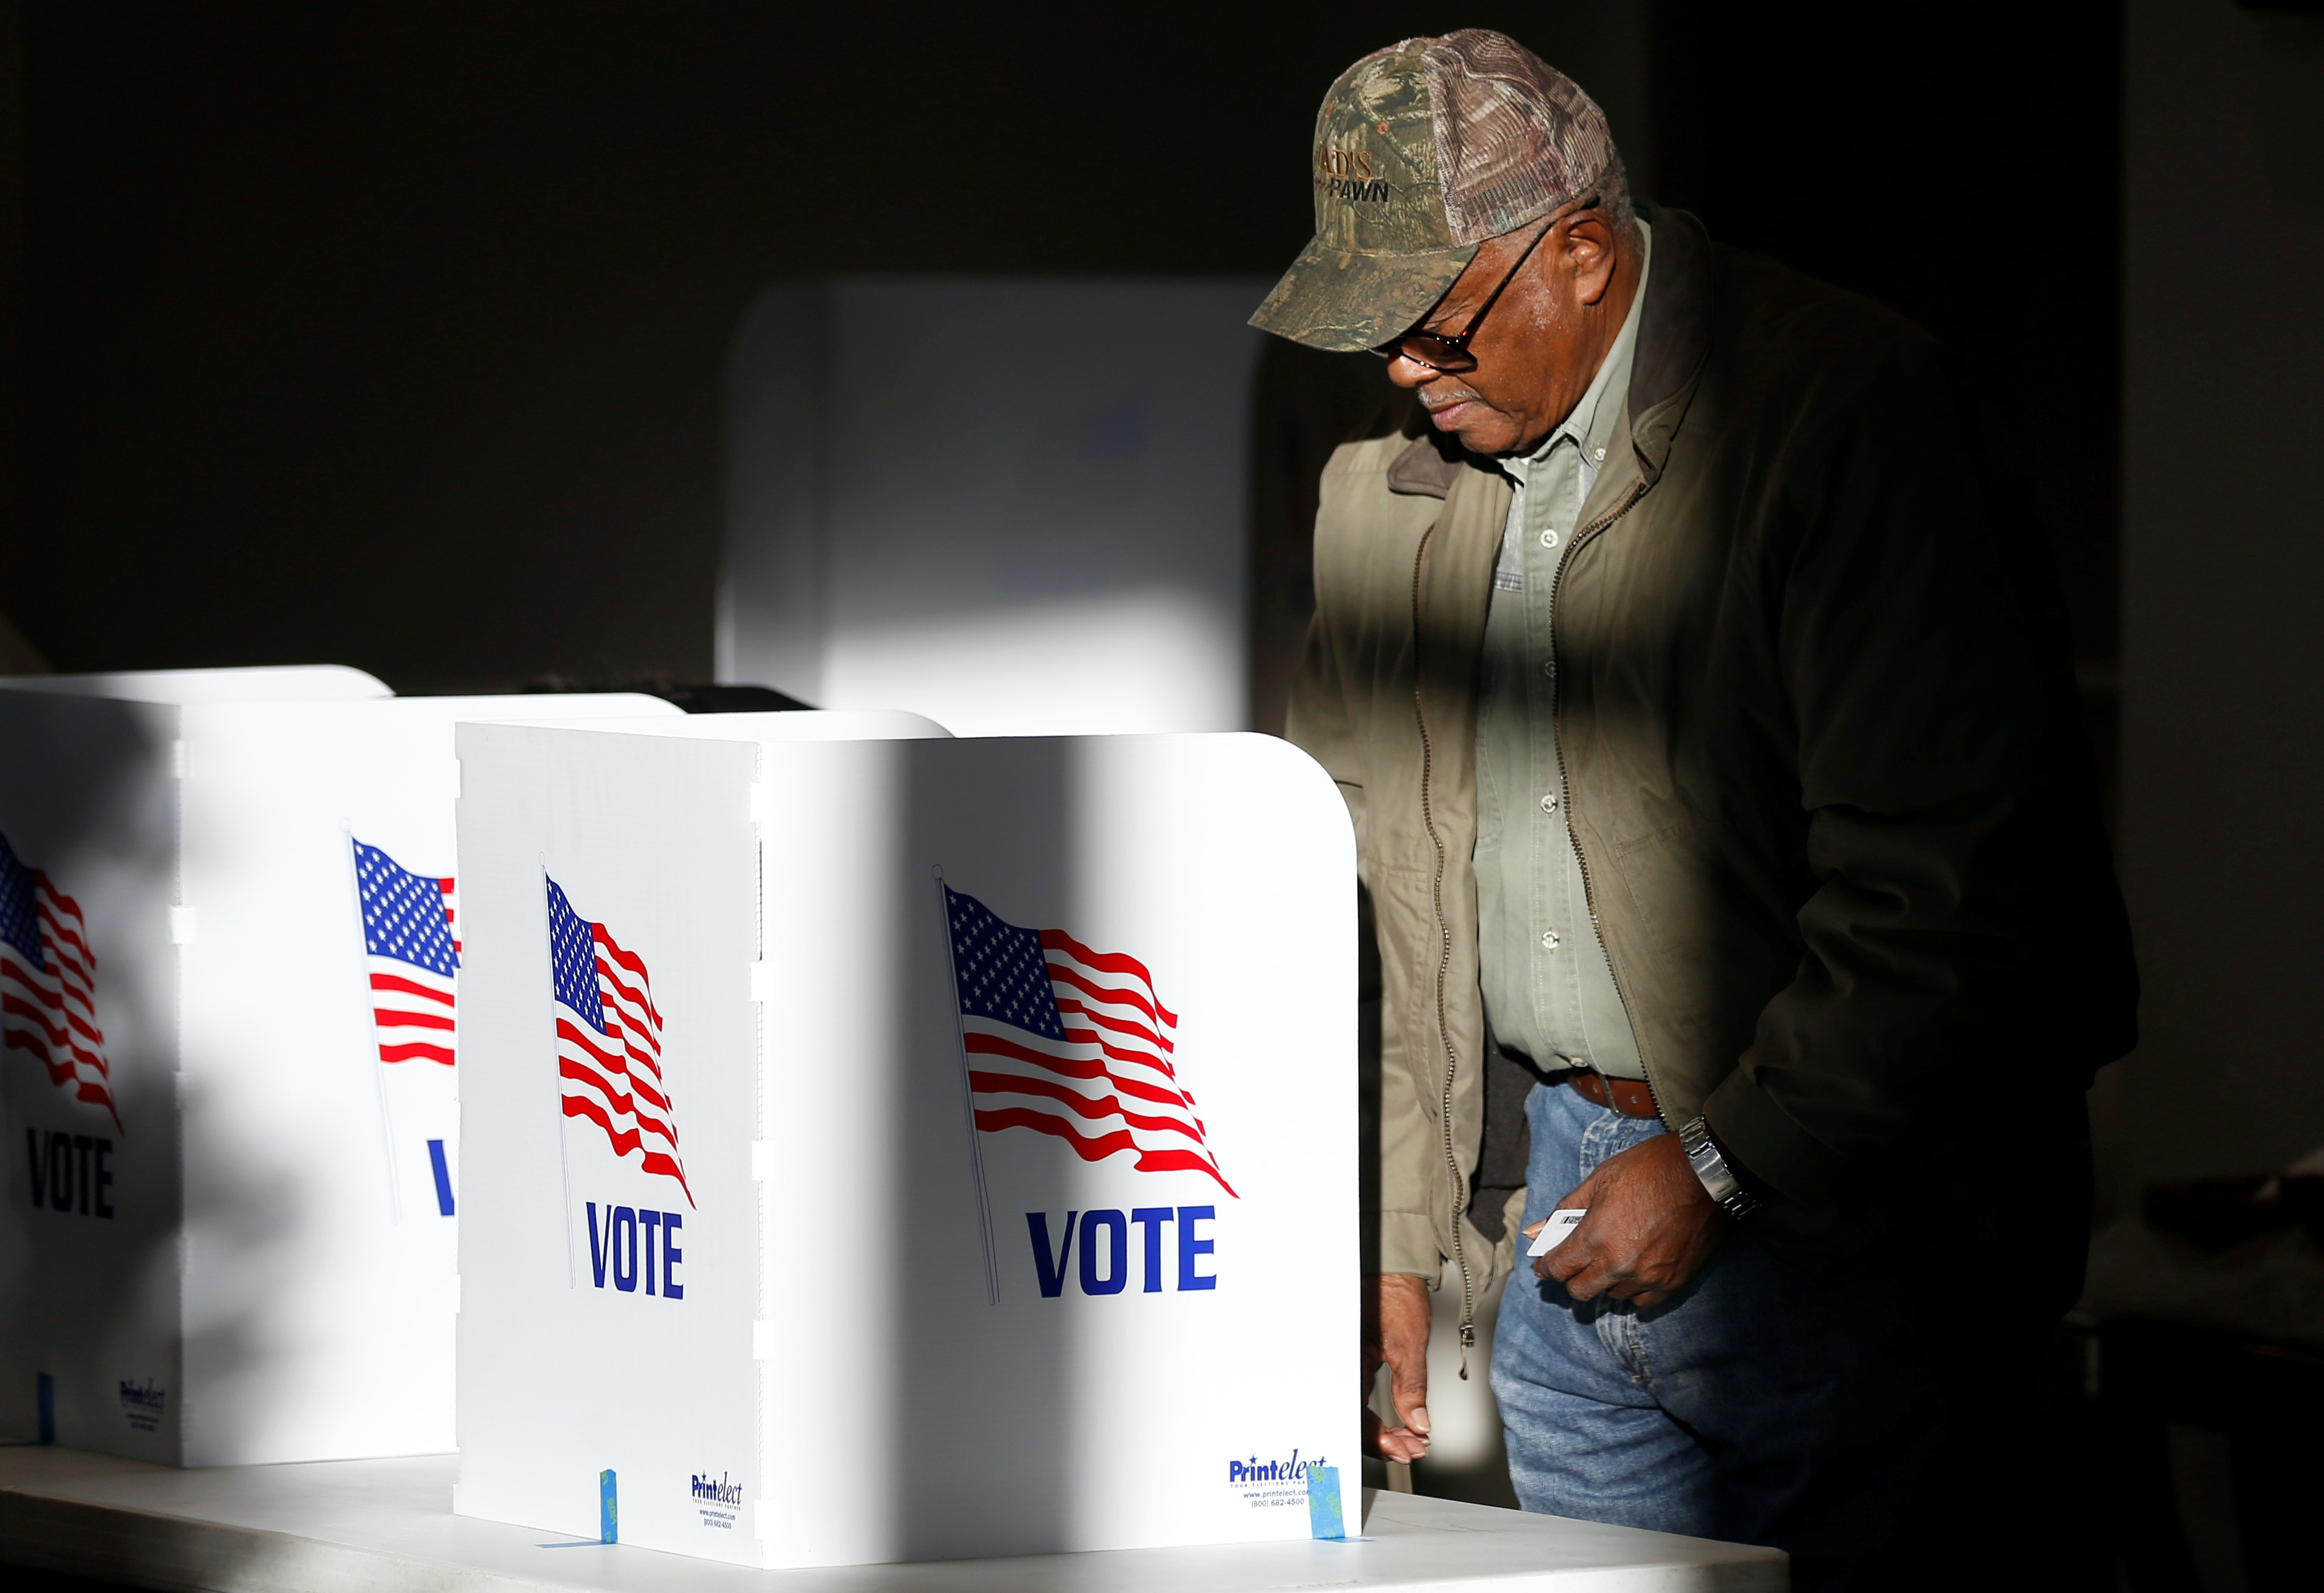 When newspapers close, voters become more partisan